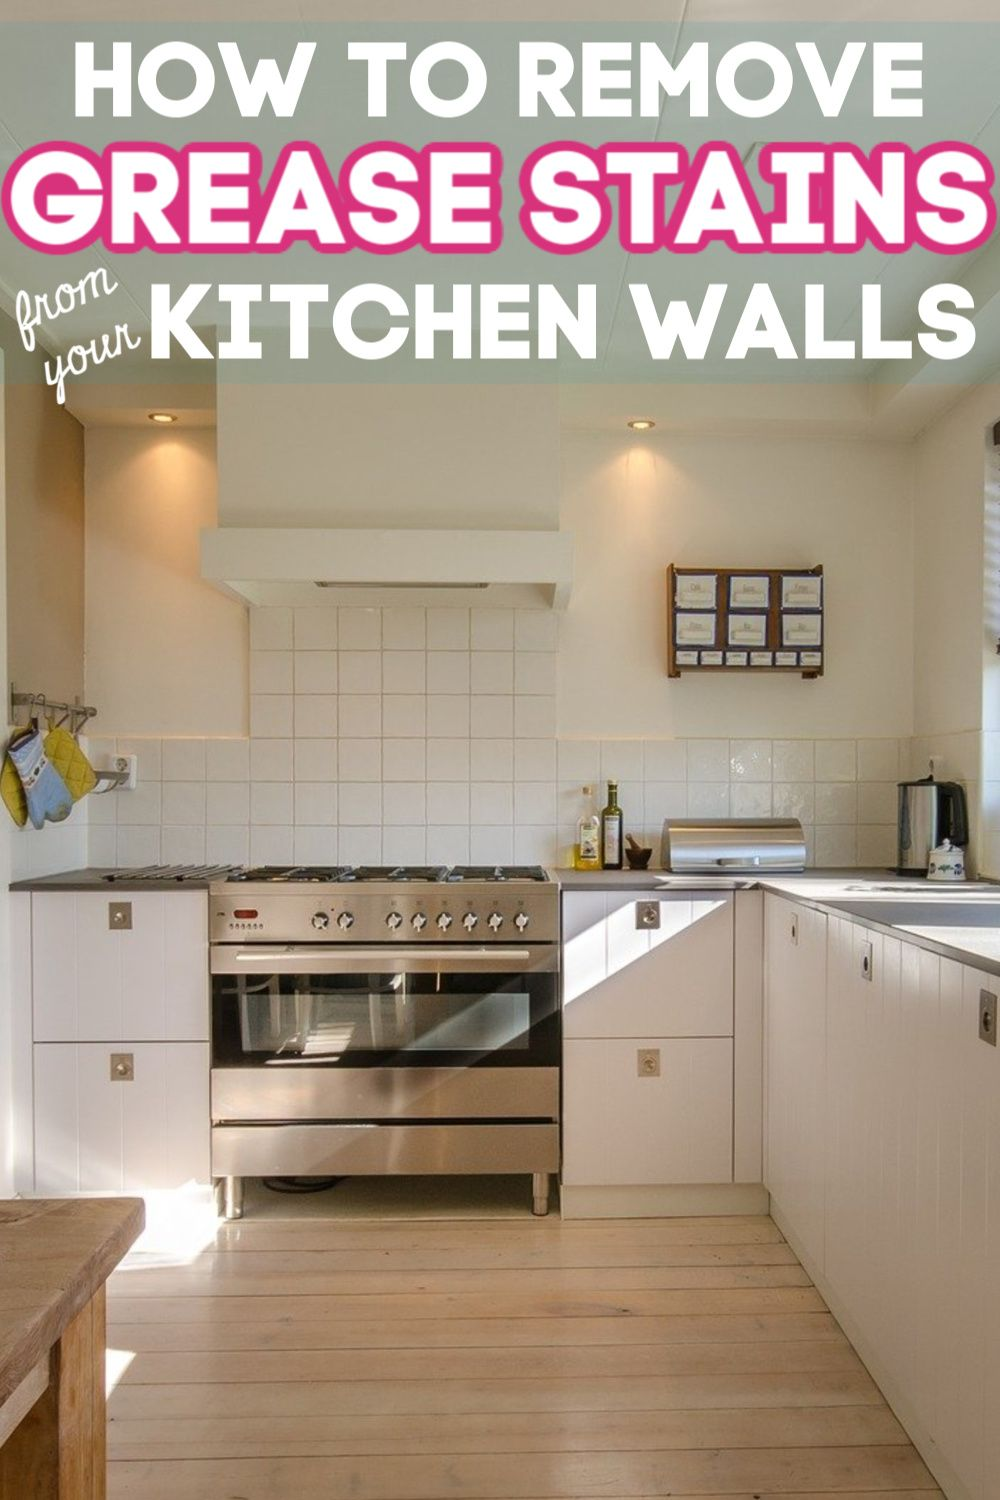 How To Clean Grease Off Walls In 2020 Remove Grease Stain Grease Stains Kitchen Wall